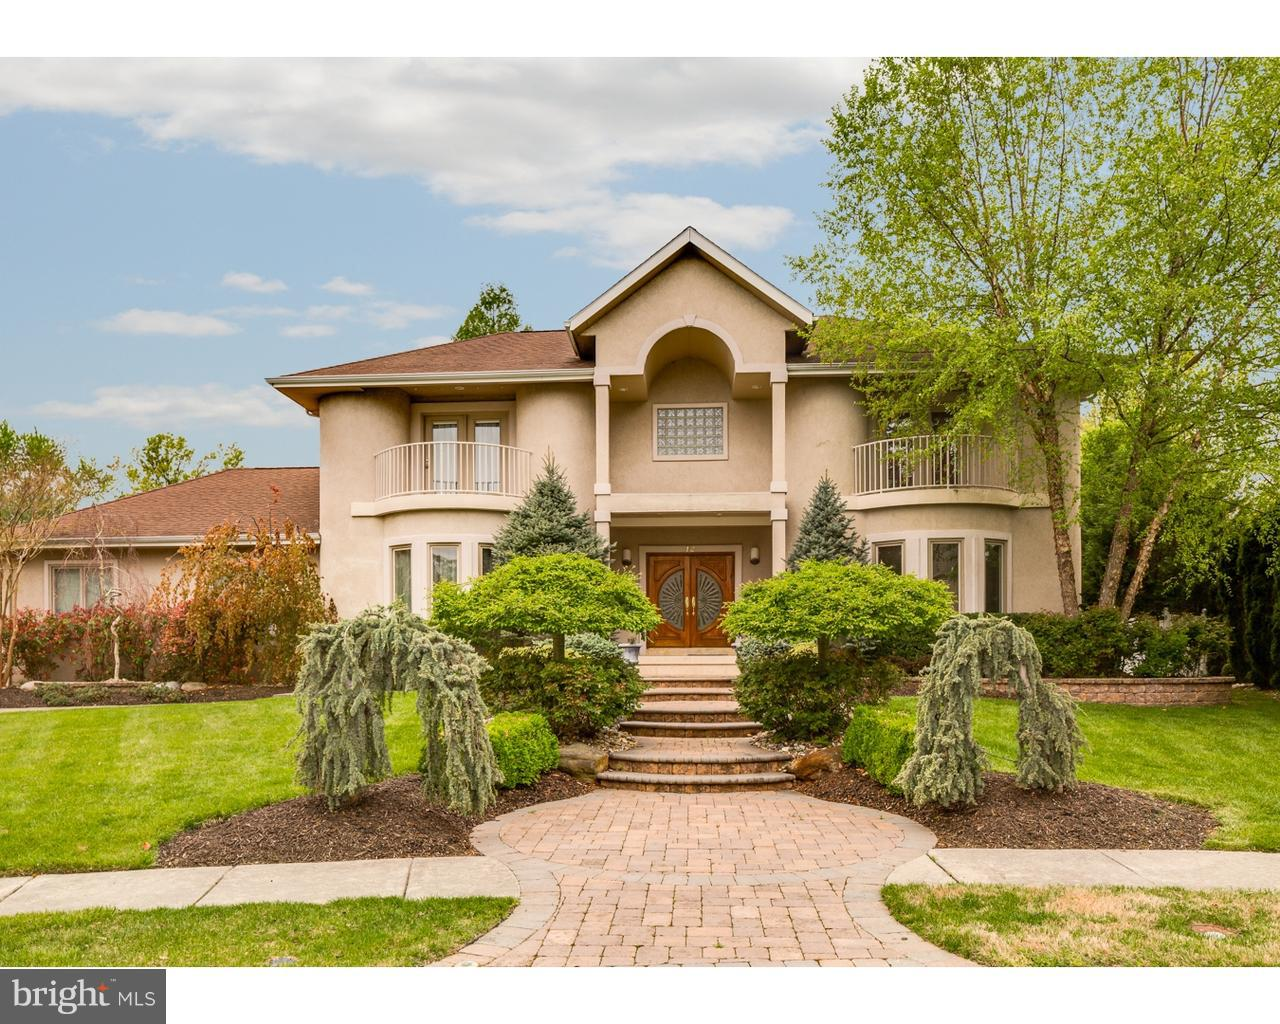 12 CARRIAGE HOUSE COURT, CHERRY HILL, NJ 08003